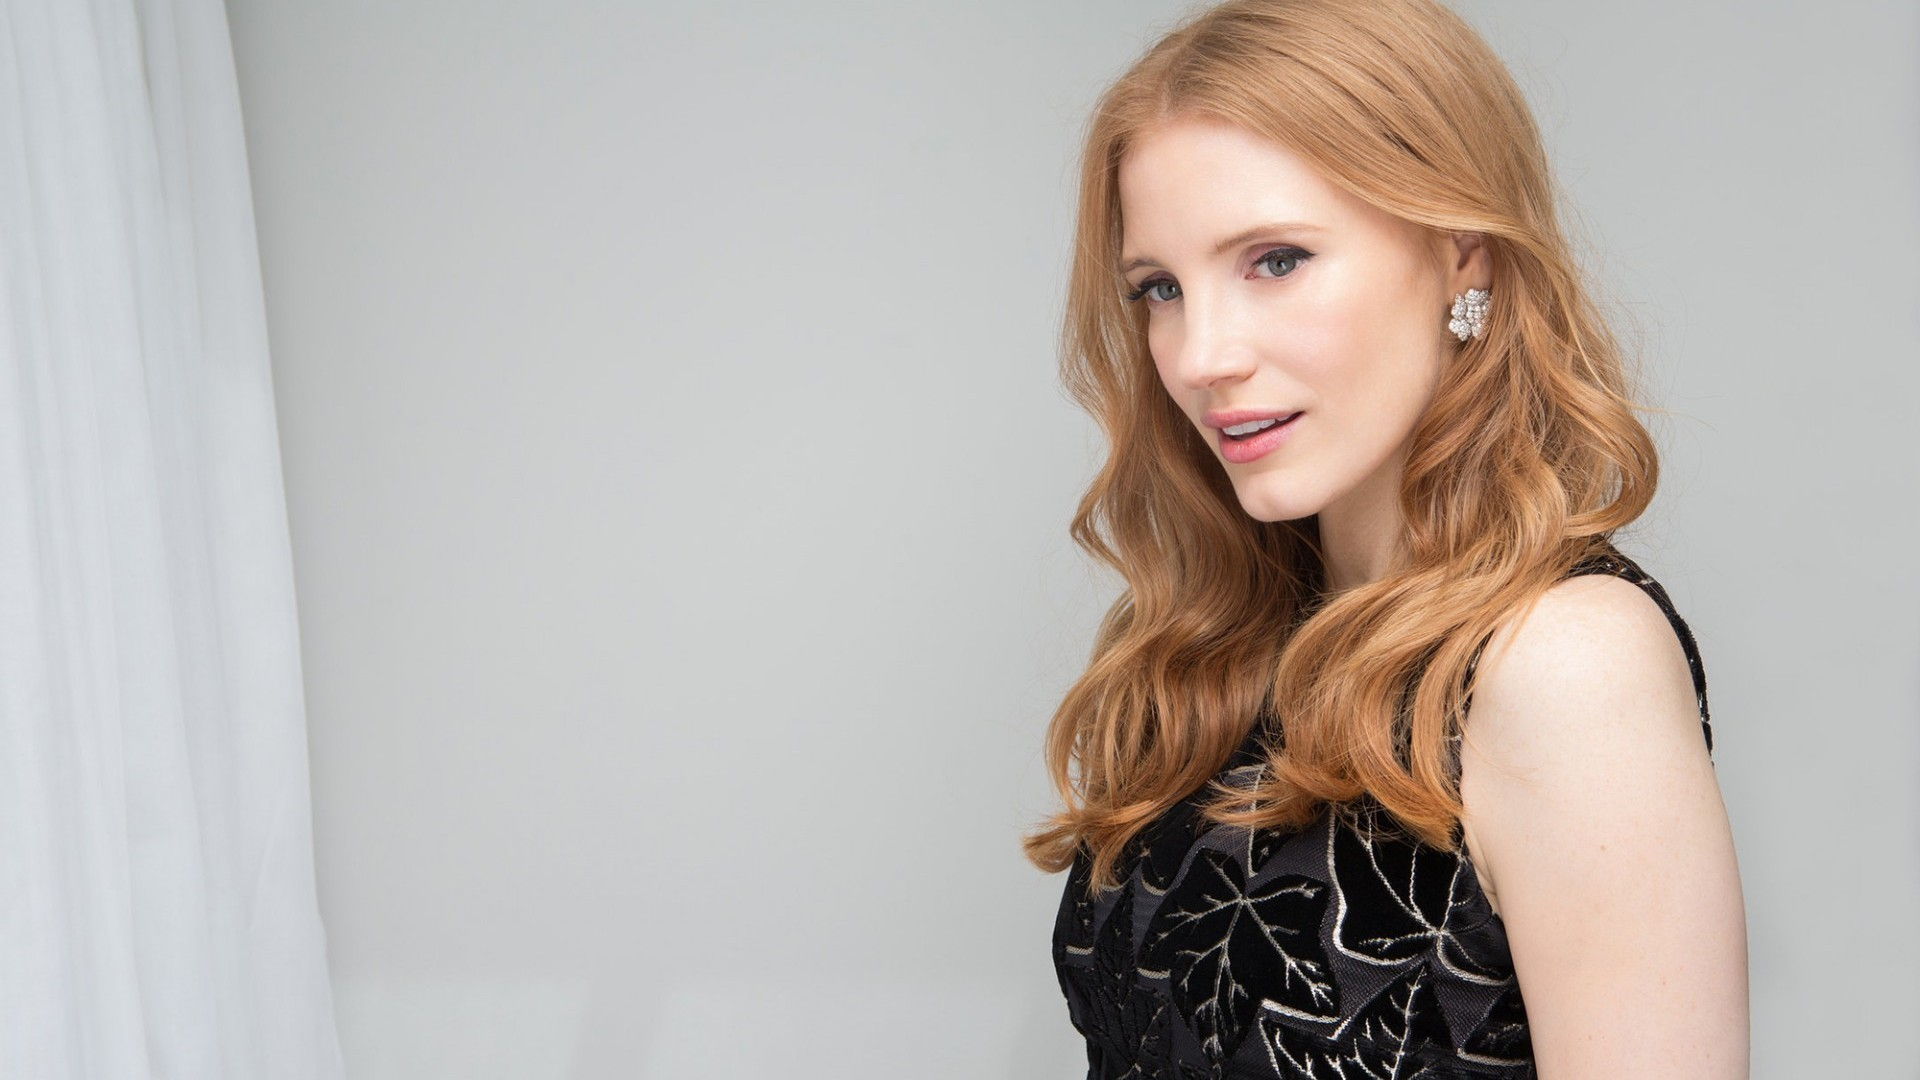 1920x1080 - Jessica Chastain Wallpapers 5